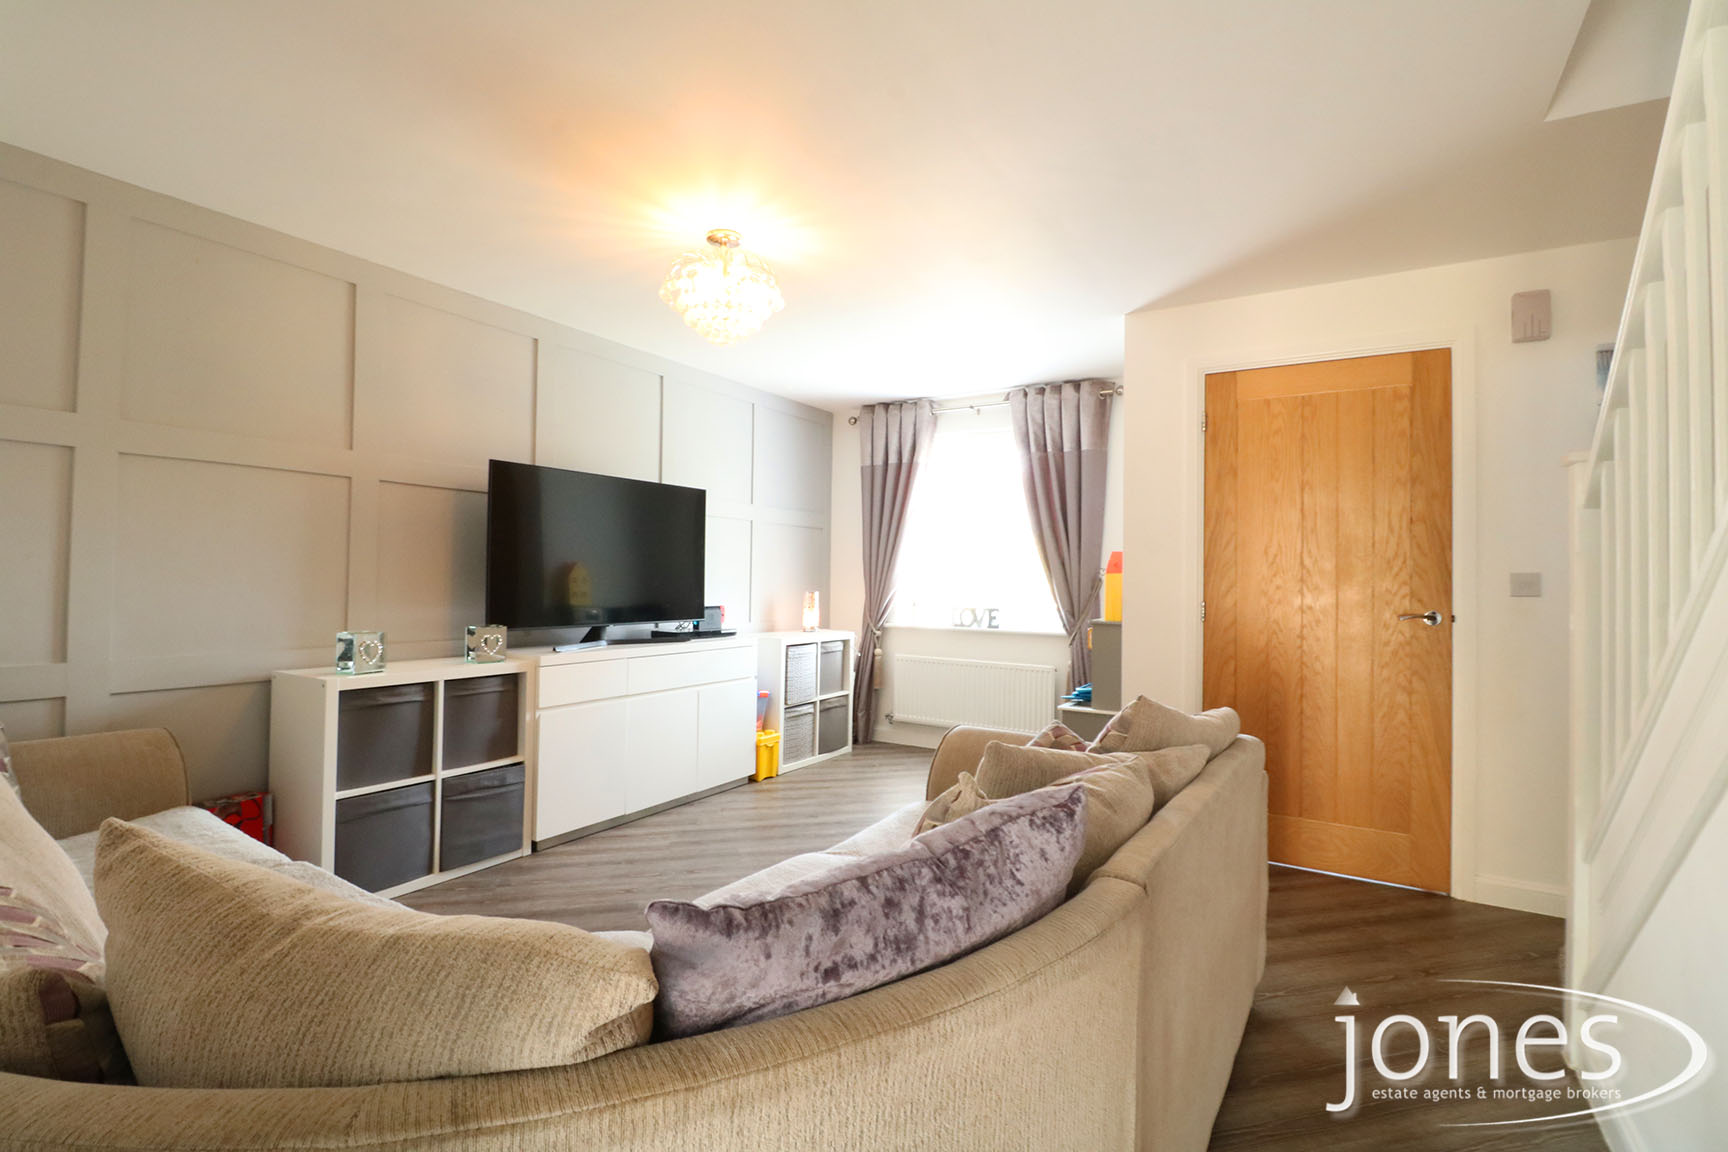 Home for Sale Let - Photo 02 Aristotle Drive, Stockton on Tees,  TS19 8GH